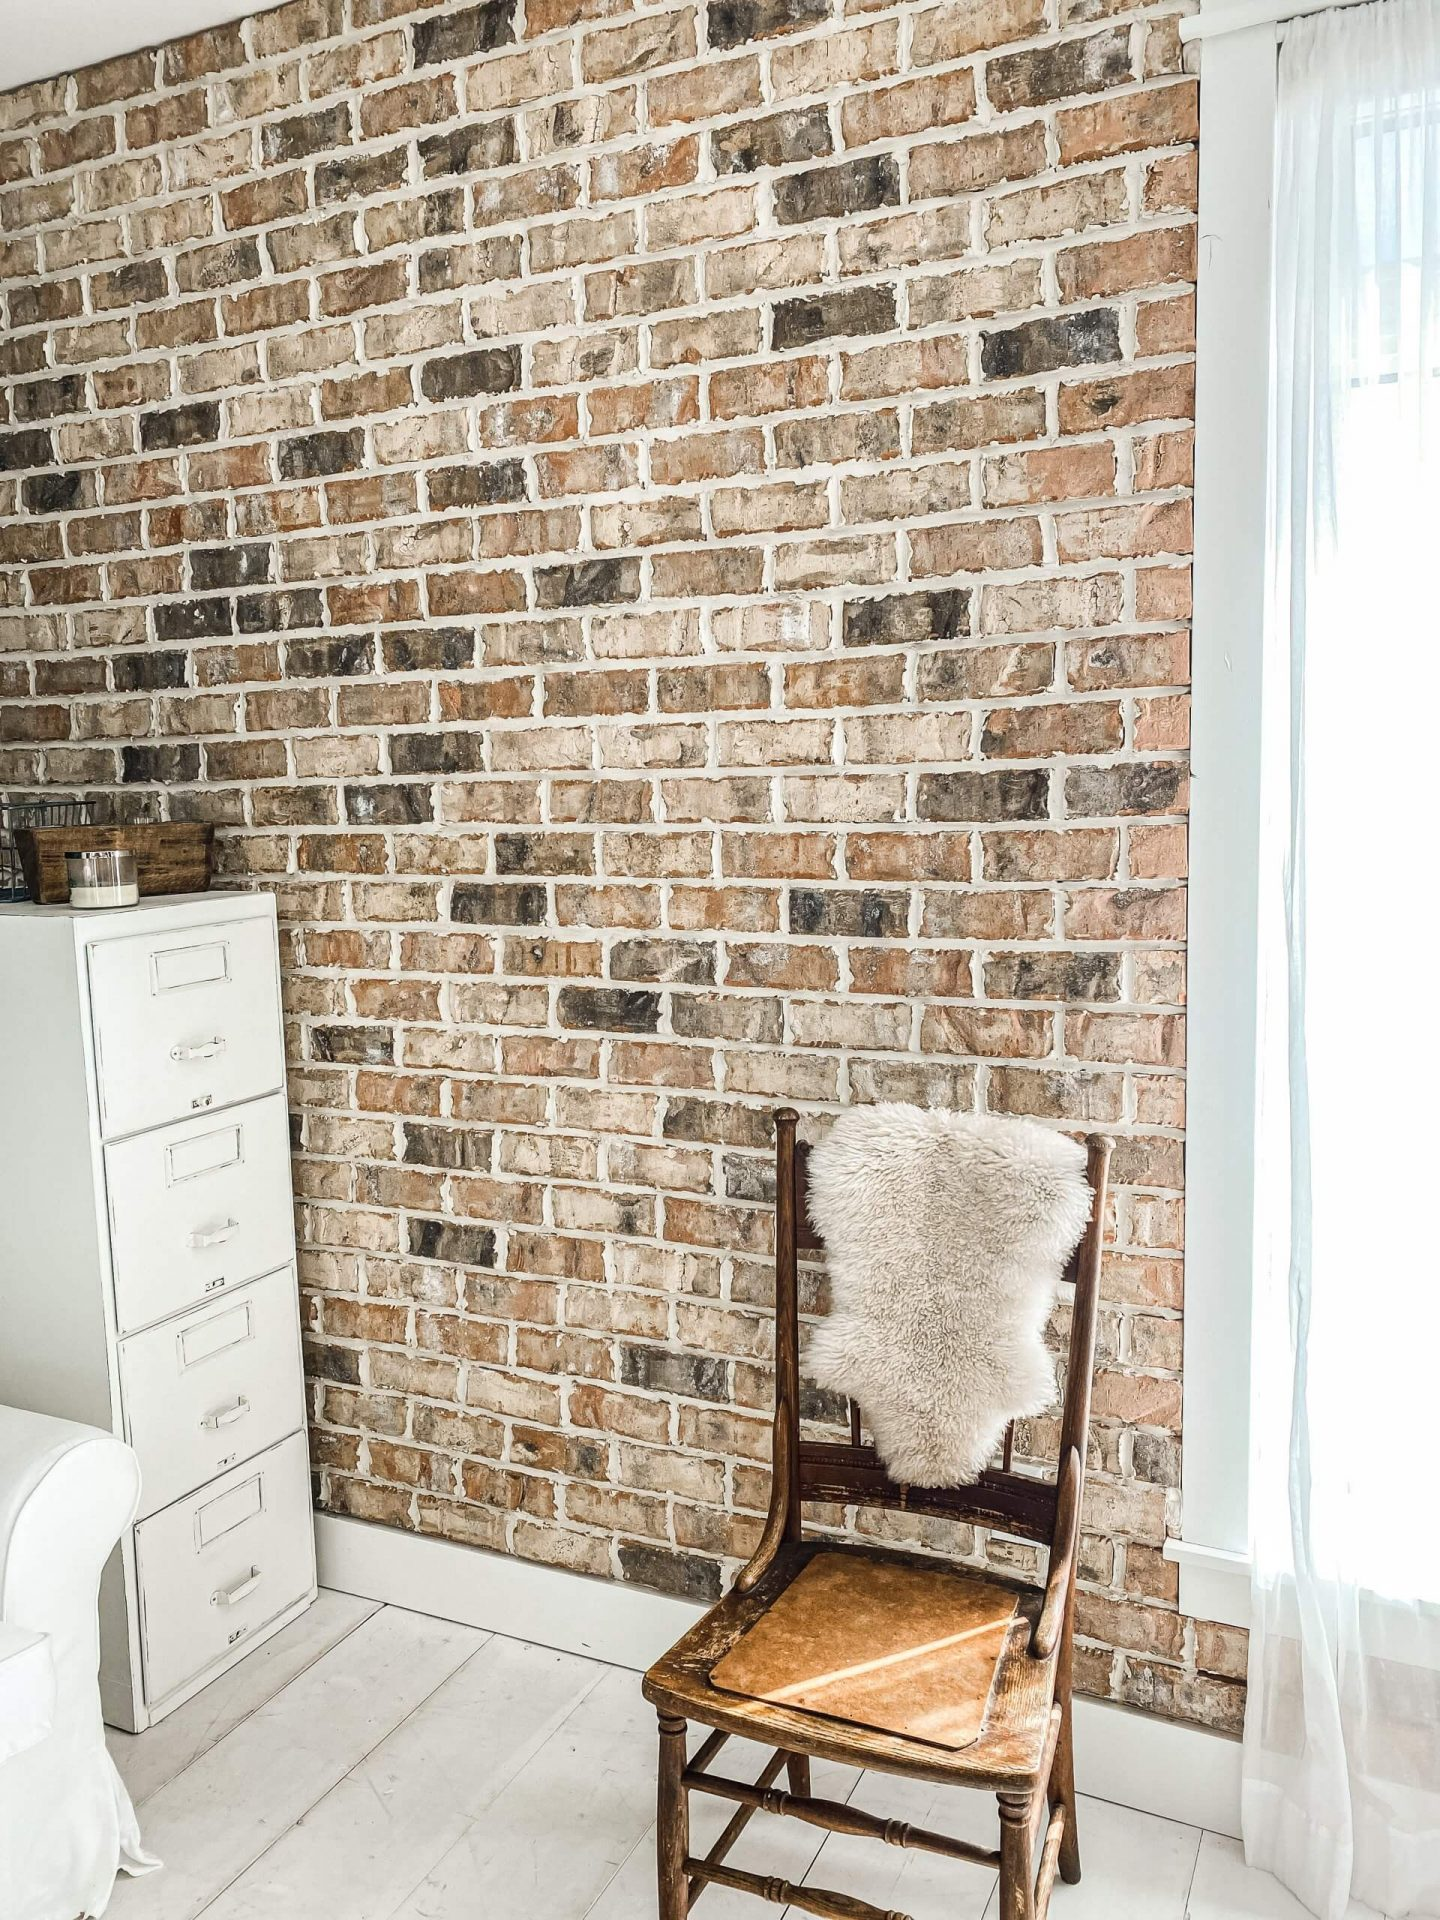 WCRP brick wall with vintage chair and sheep skin rug in photo studio